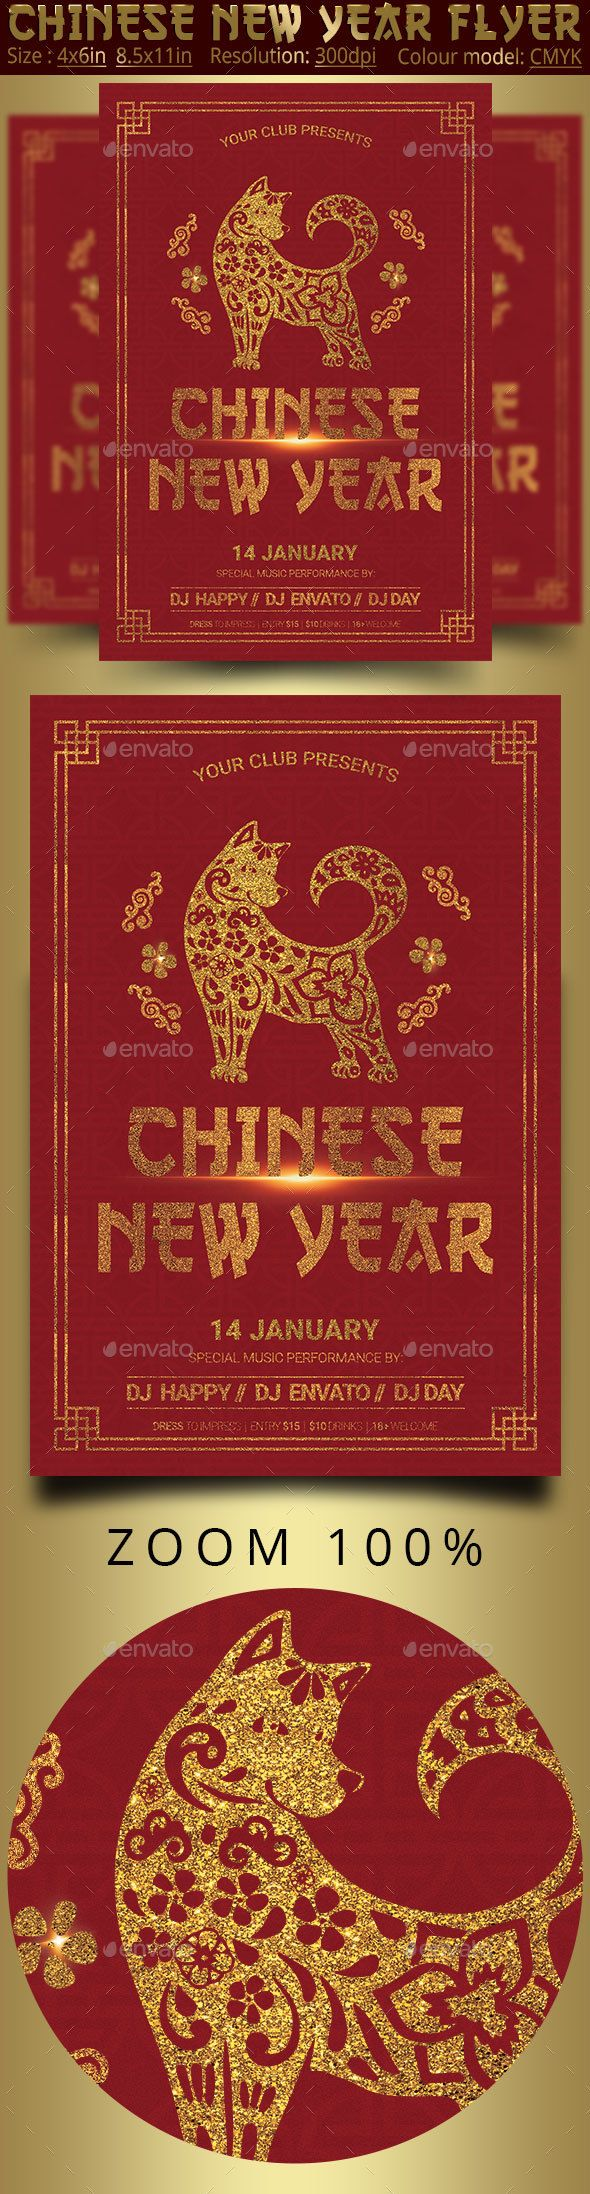 Chinese New Year Party Flyer Poster #red #new year  • Download here → https://graphicriver.net/item/chinese-new-year-party-flyer-poster/21198319?ref=pxcr